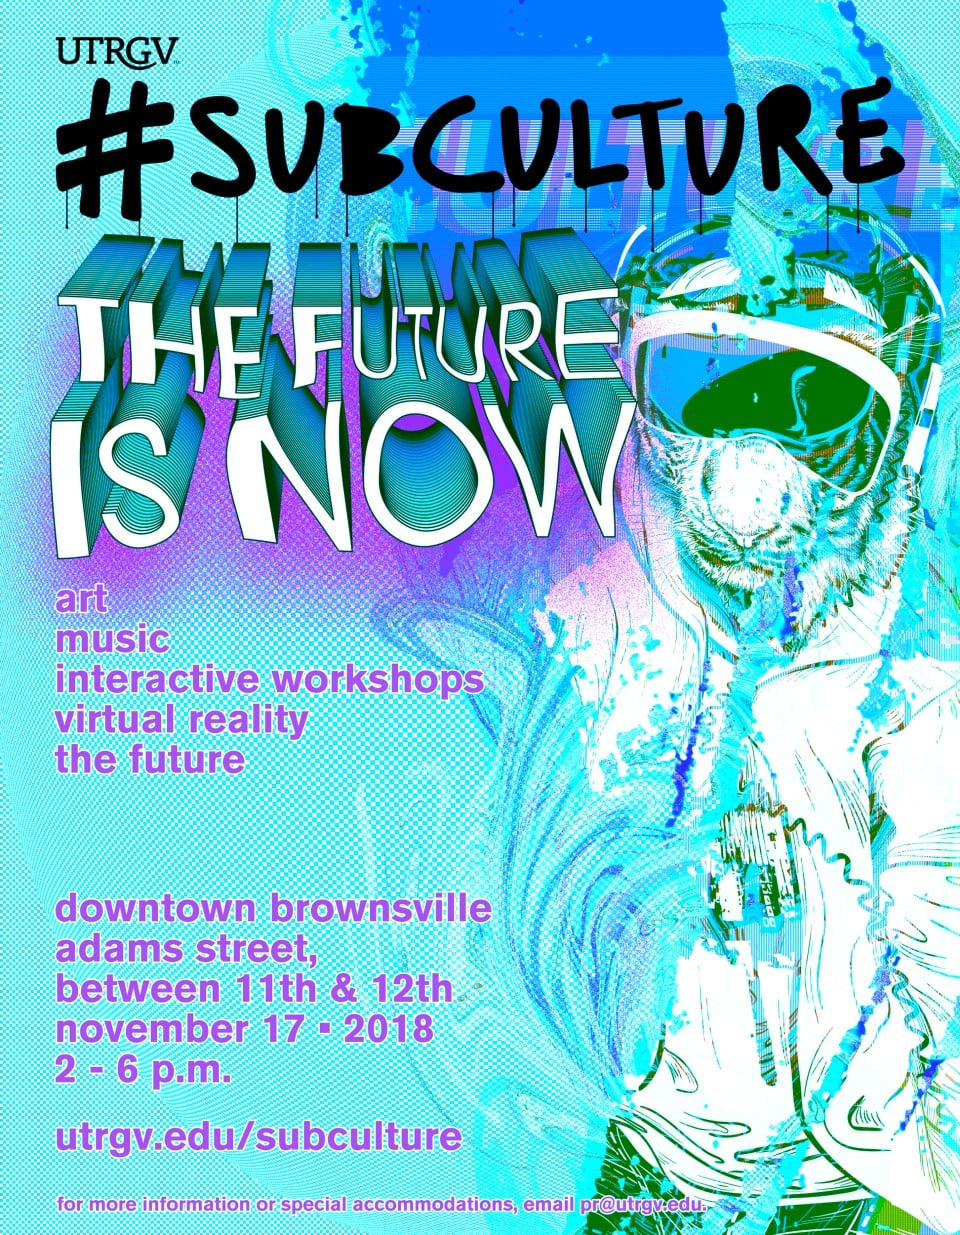 UTRGV #subculture: the future is now